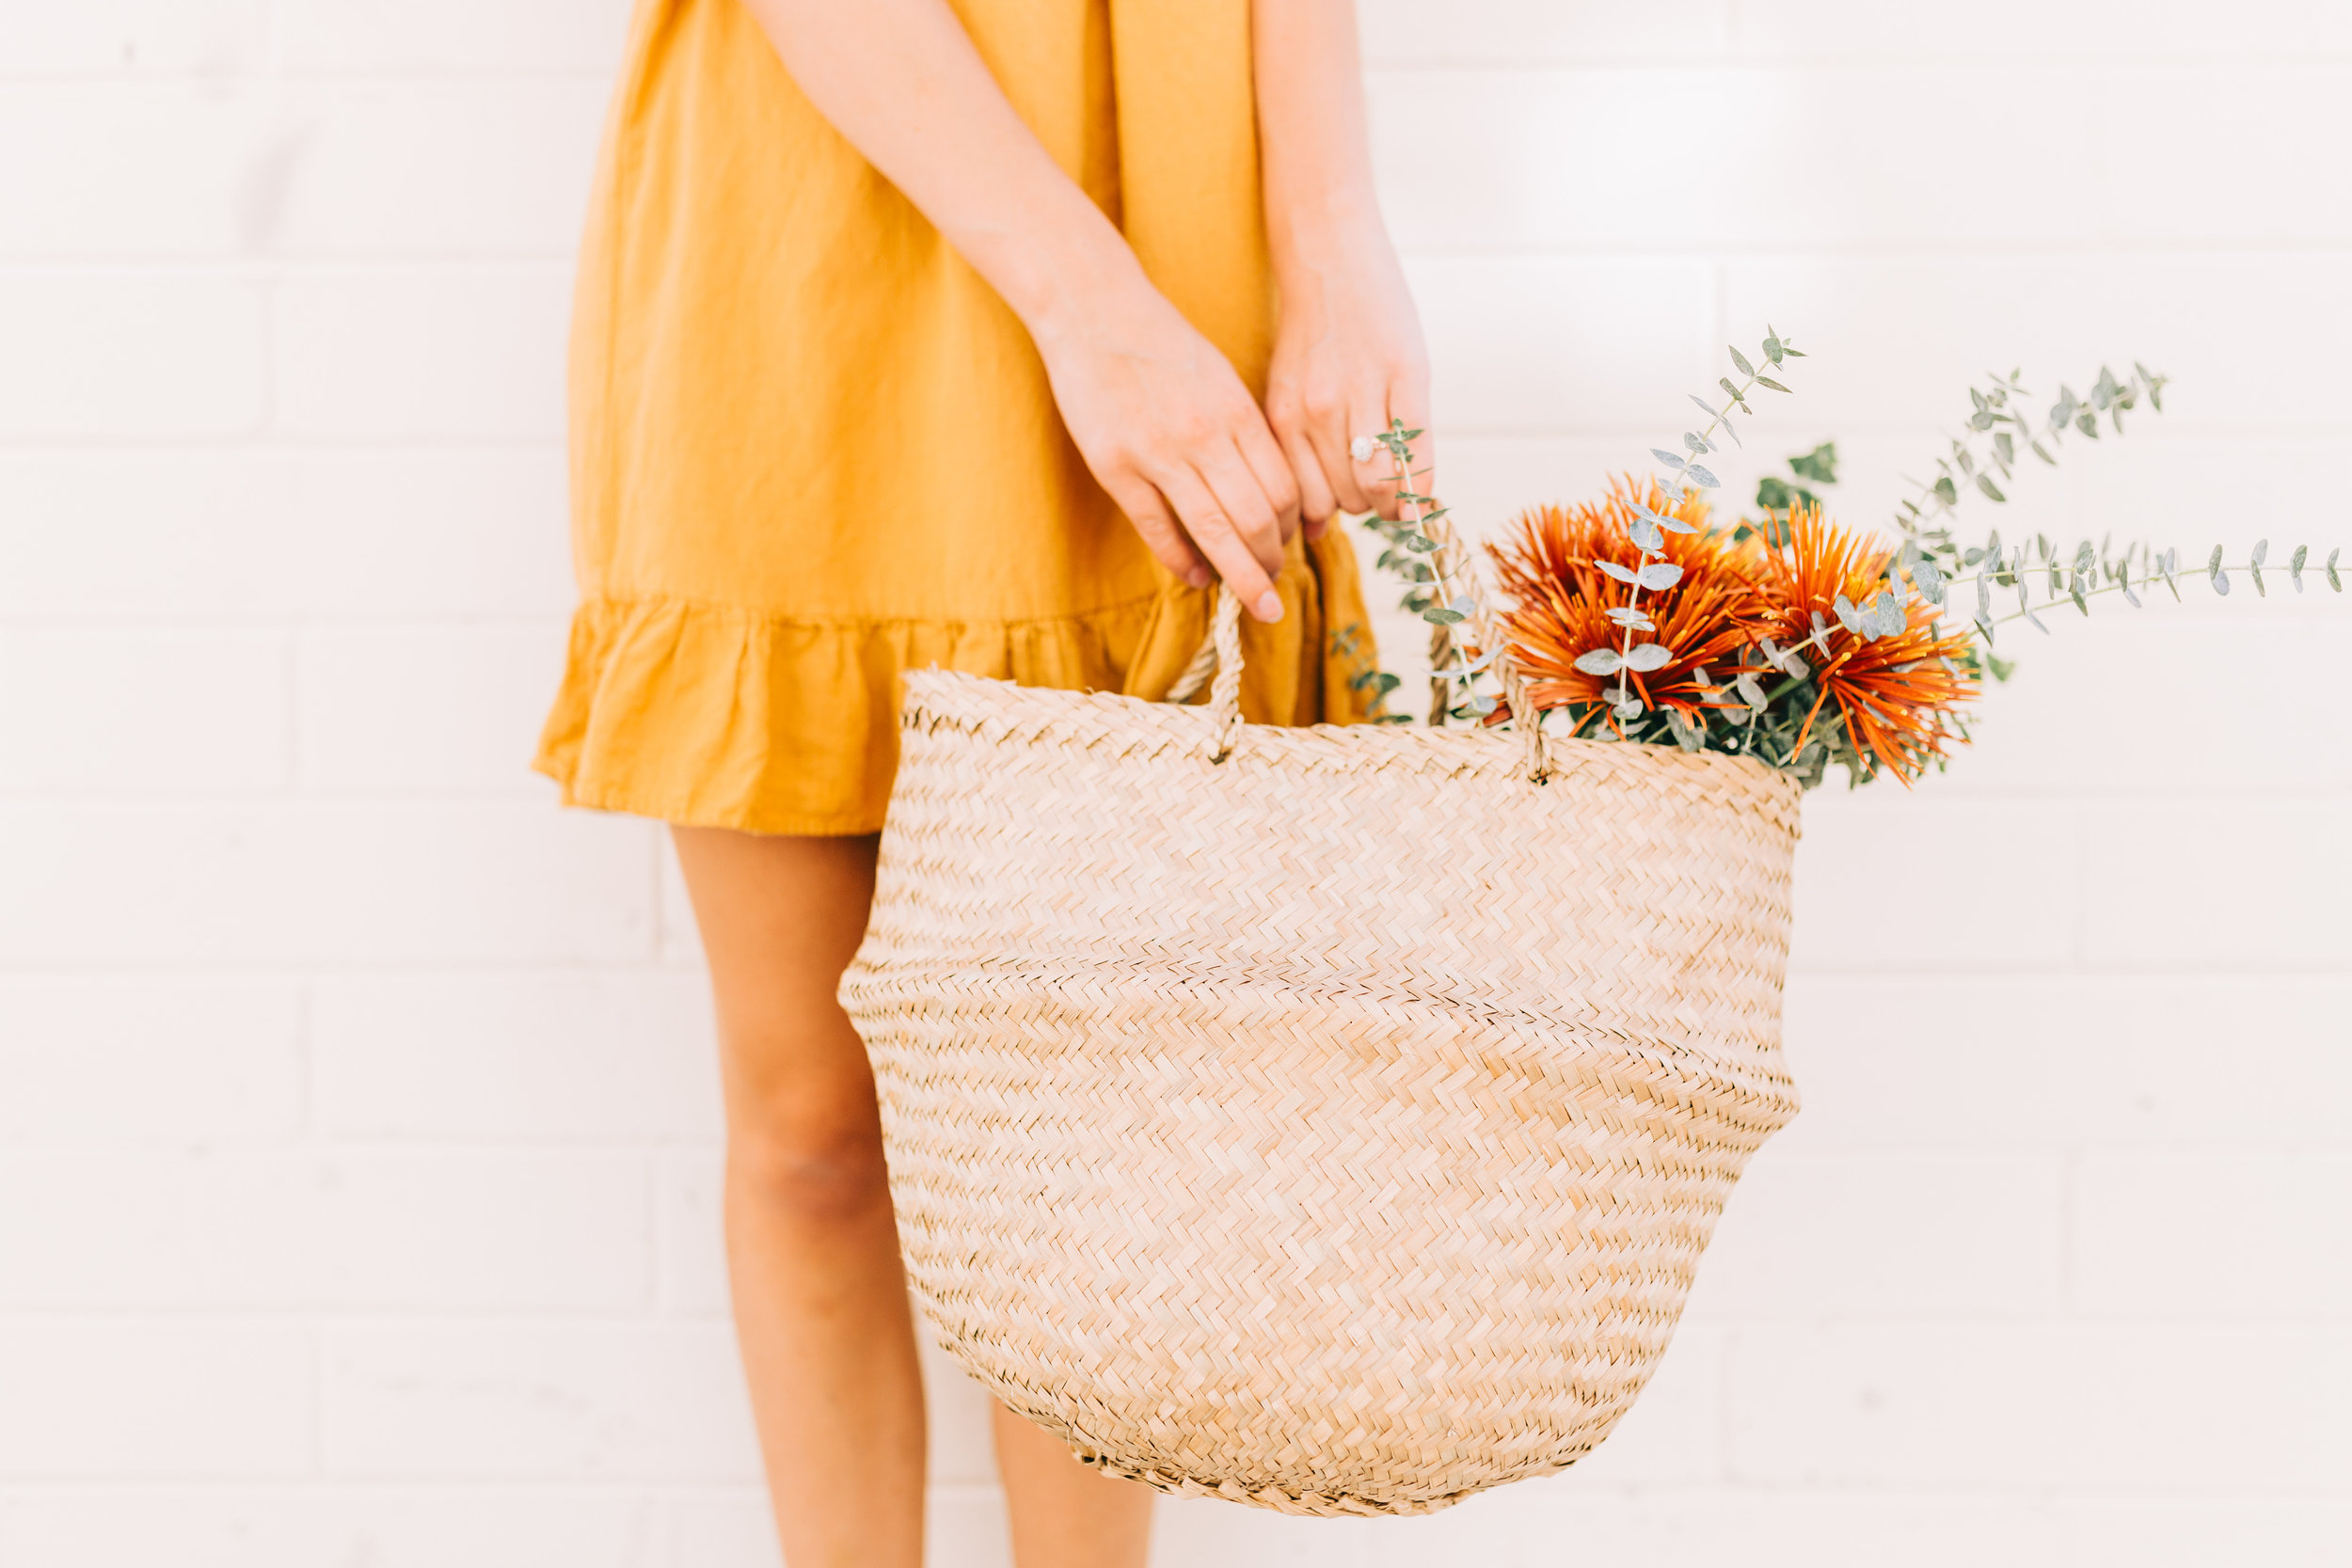 Hand Woven Basket - Ten Thousand Villages | $19 with code STYLEMEFAIR25 for 25% off